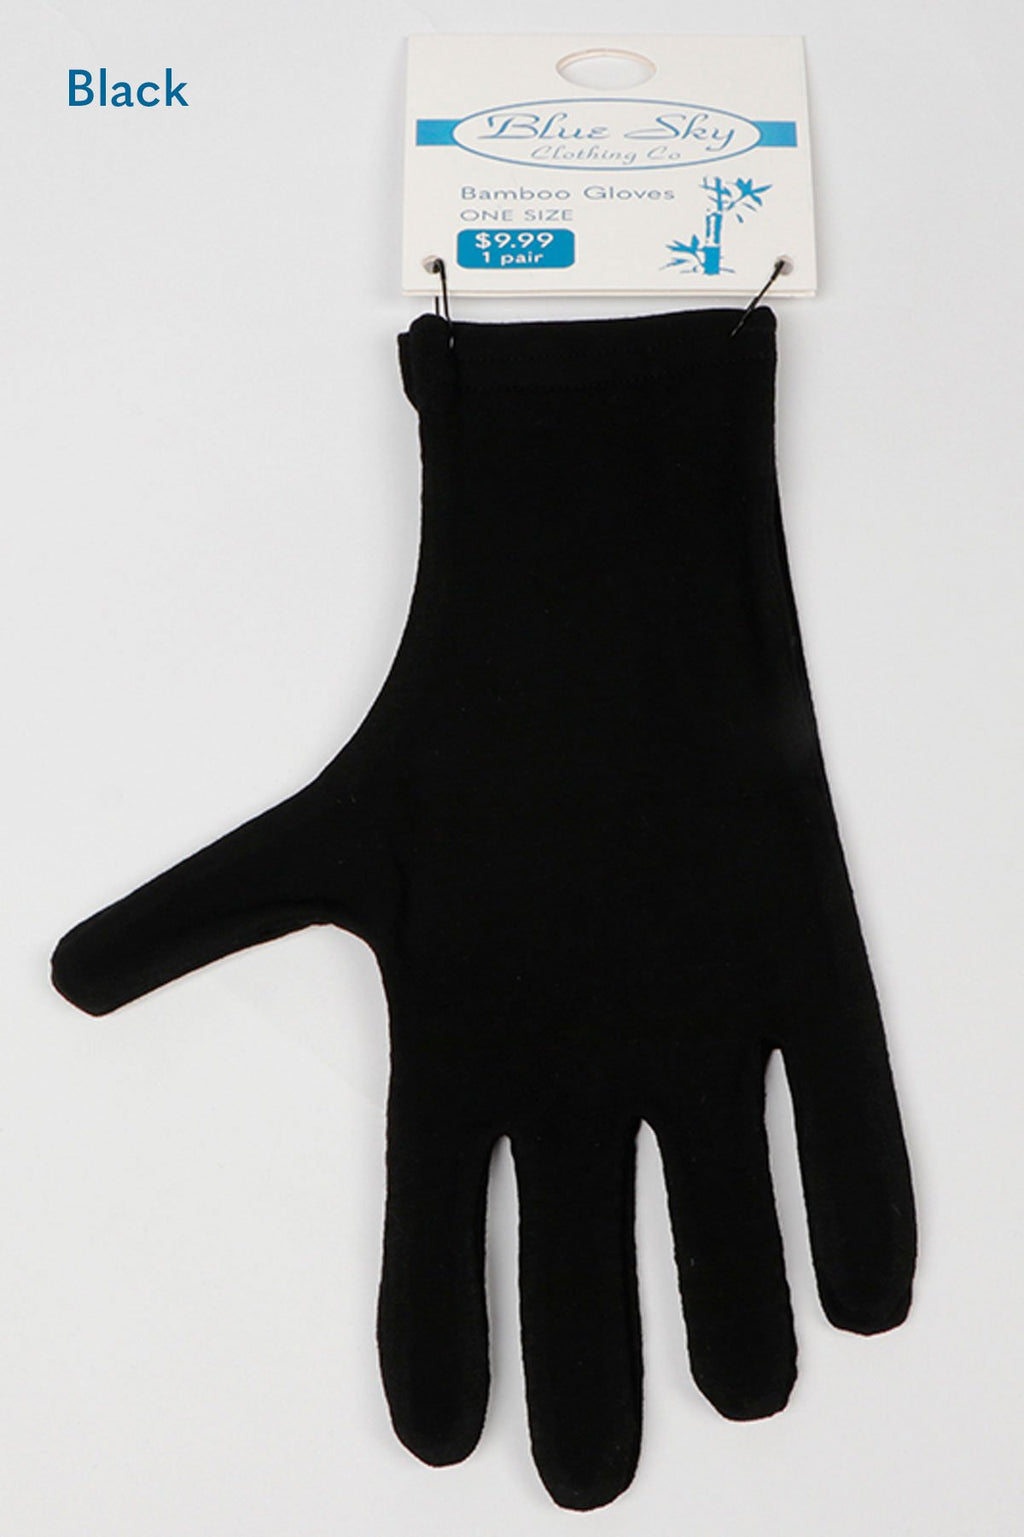 Bamboo Gloves, Pack of 3 pairs, Assorted colours - Blue Sky Clothing Co